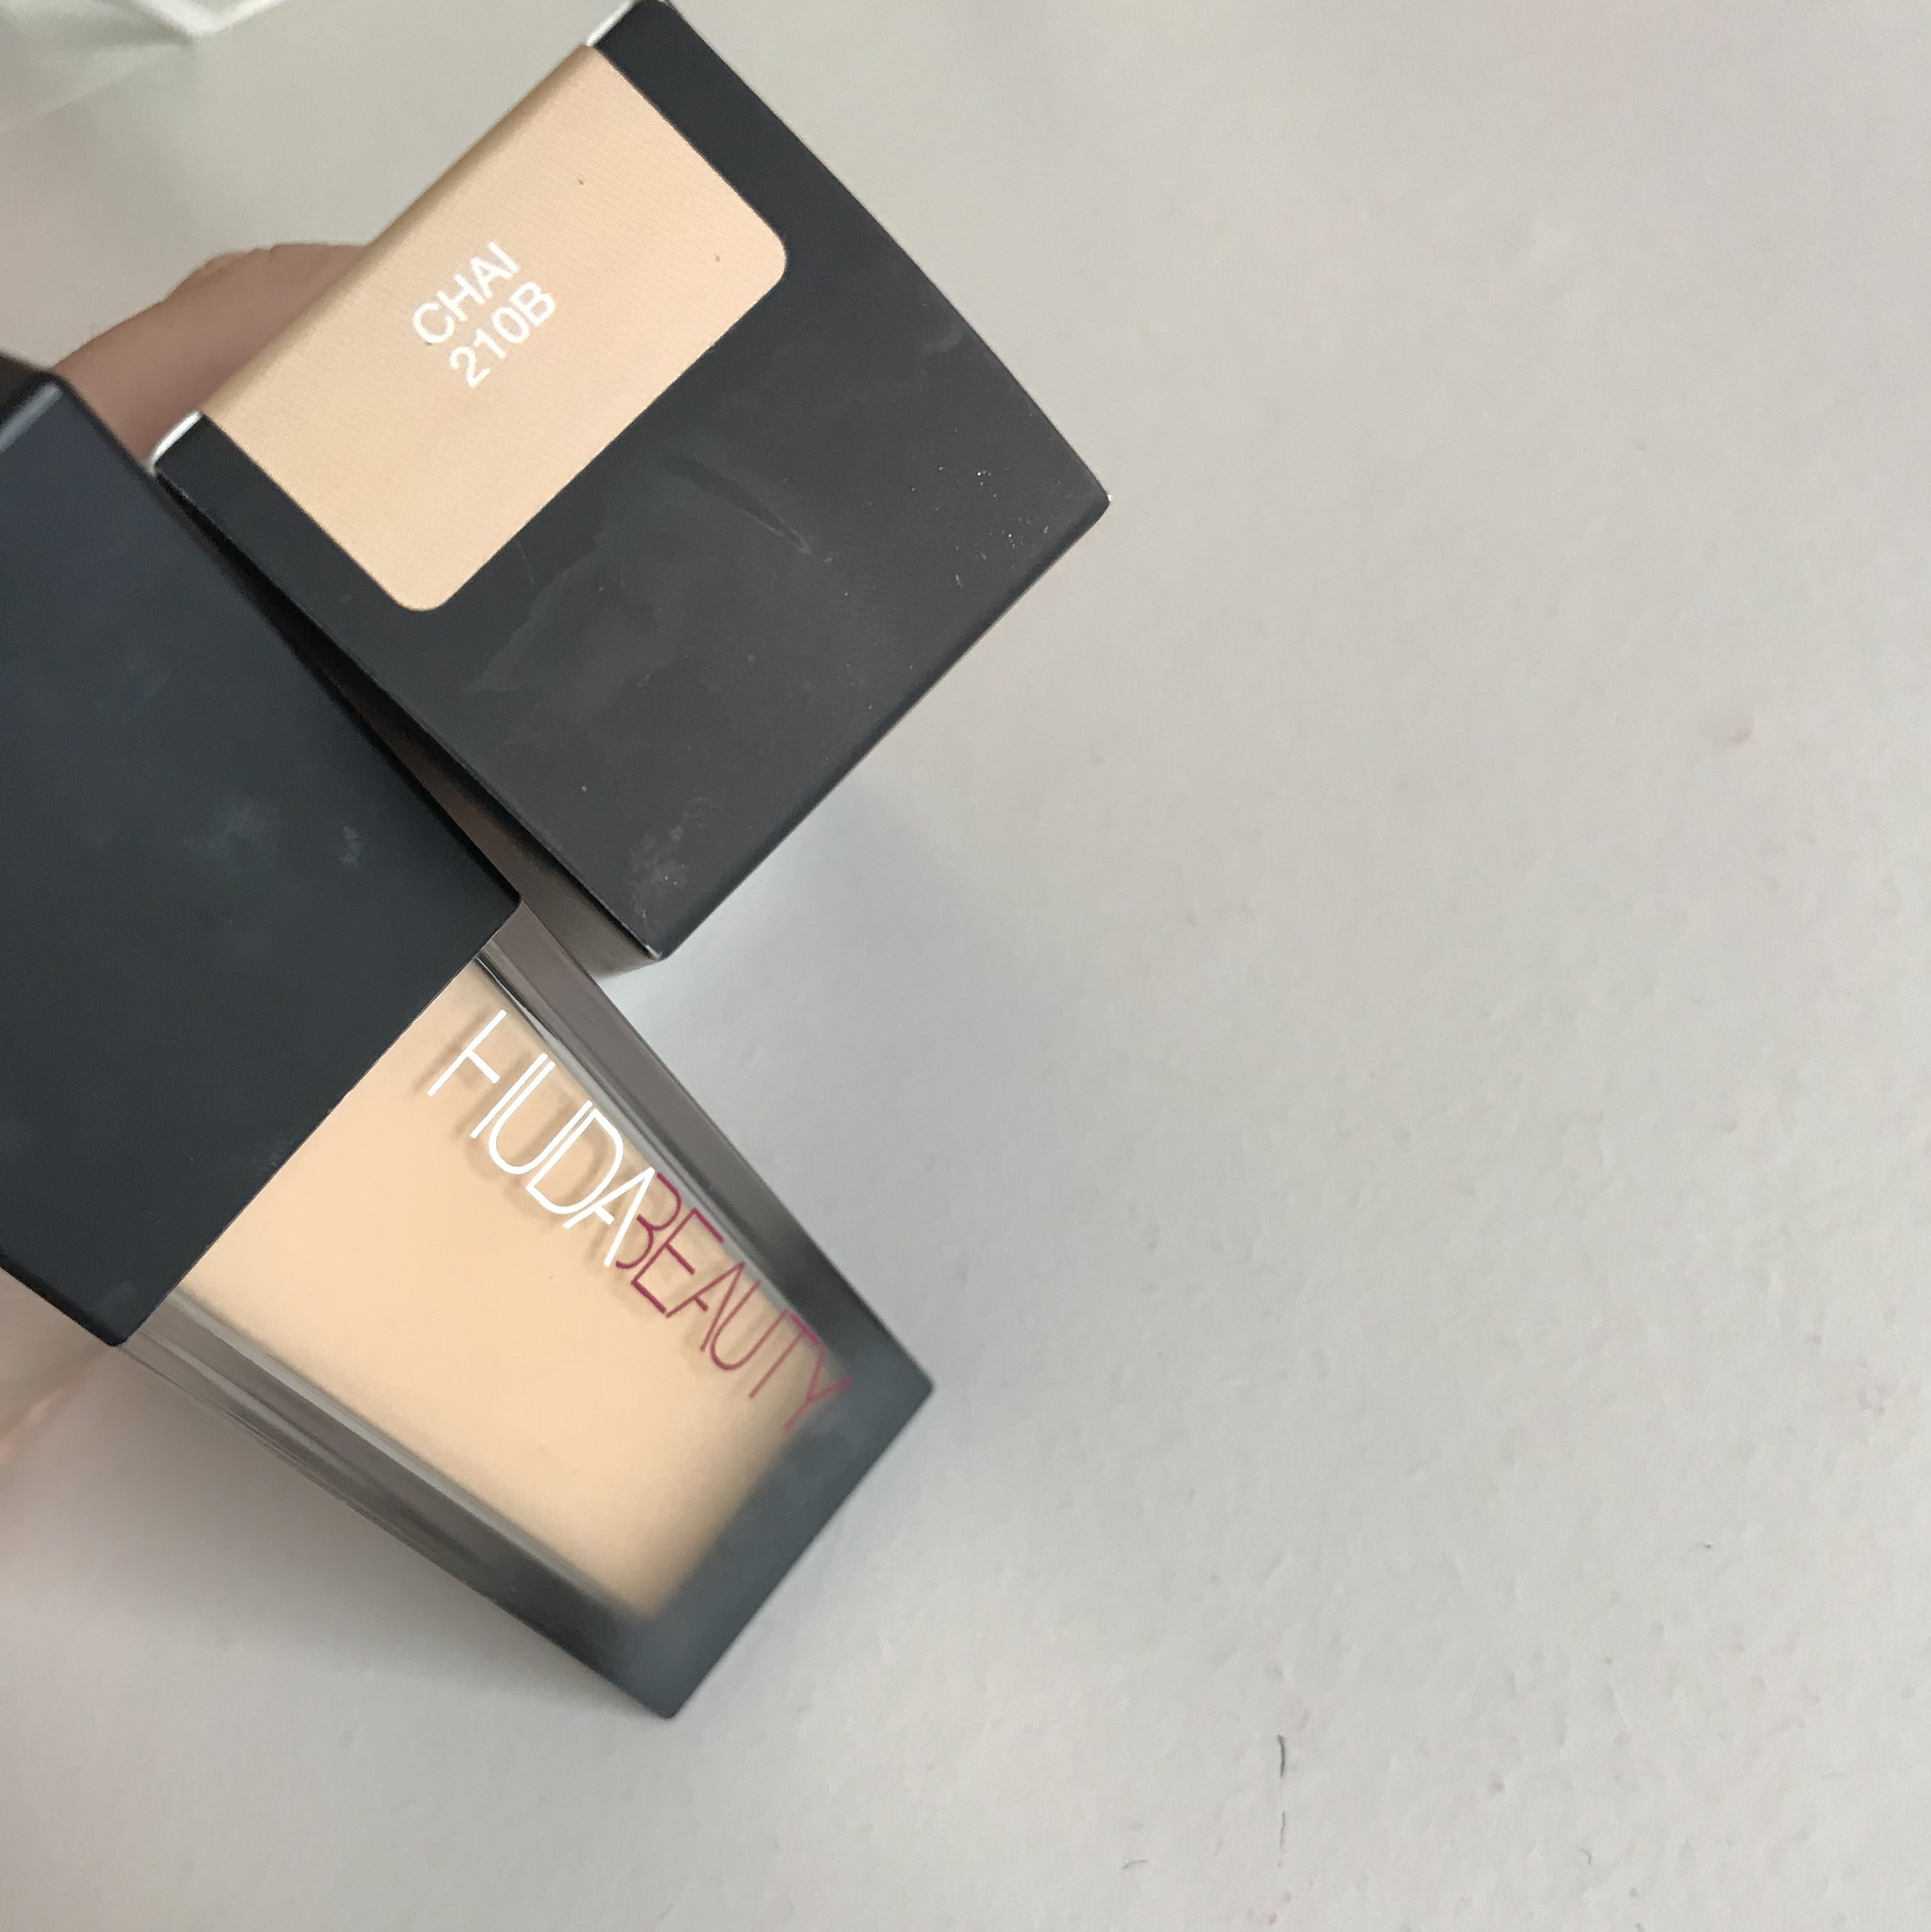 Huda Beauty Fauxfilter Foundation In Shade Chai Depop